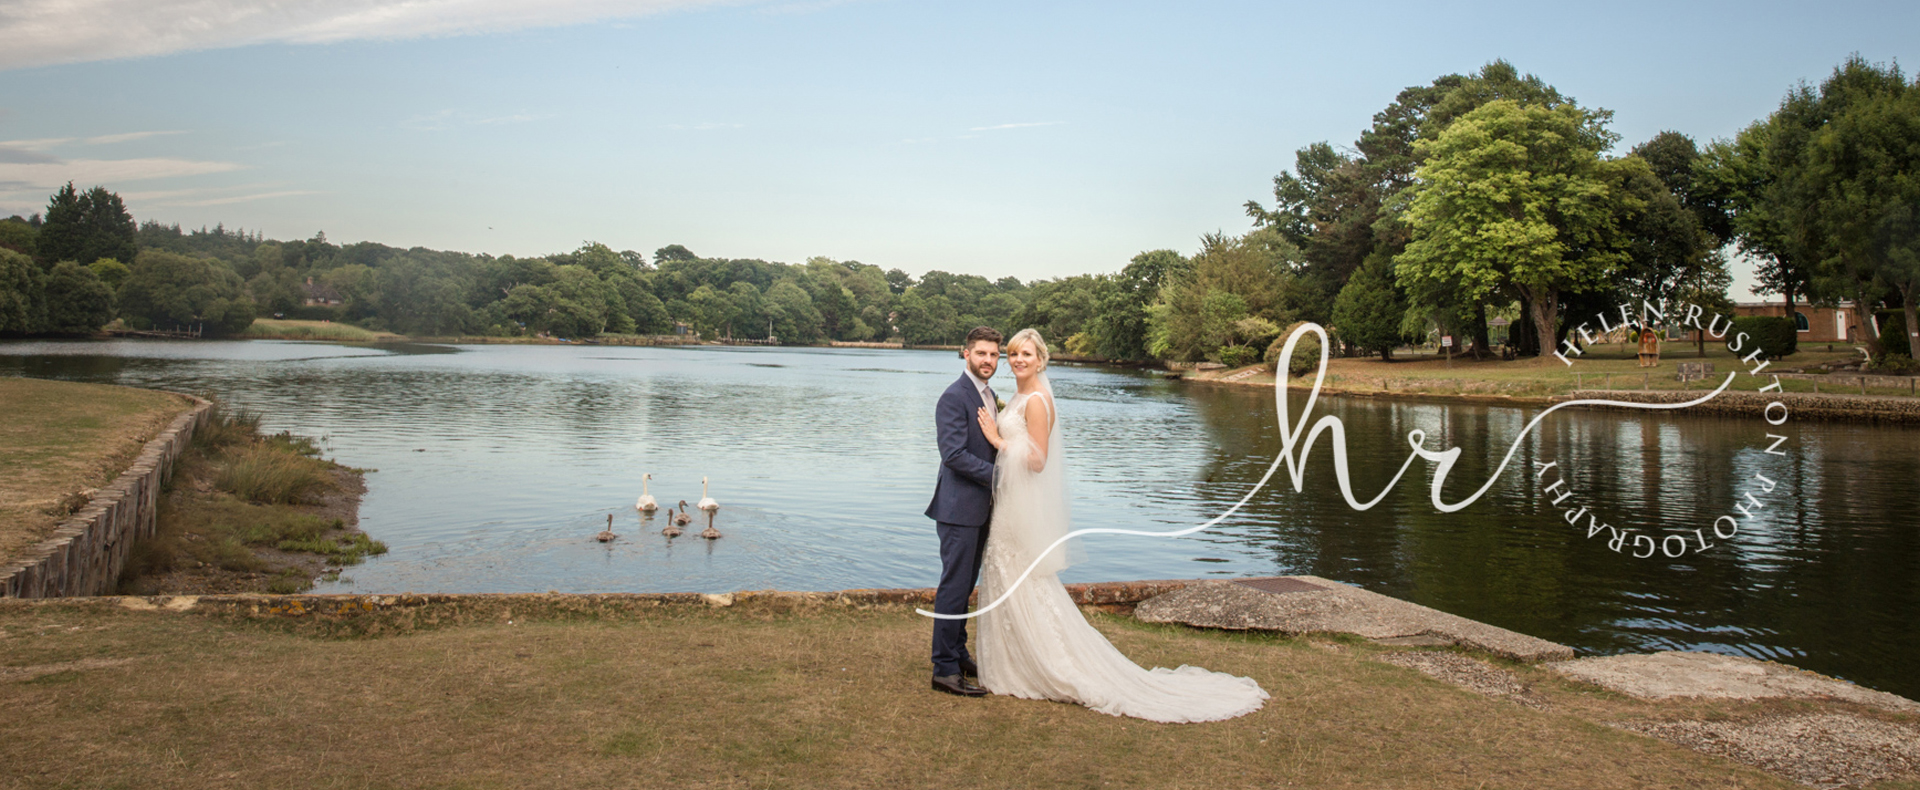 Nikki and Nick real wedding banner